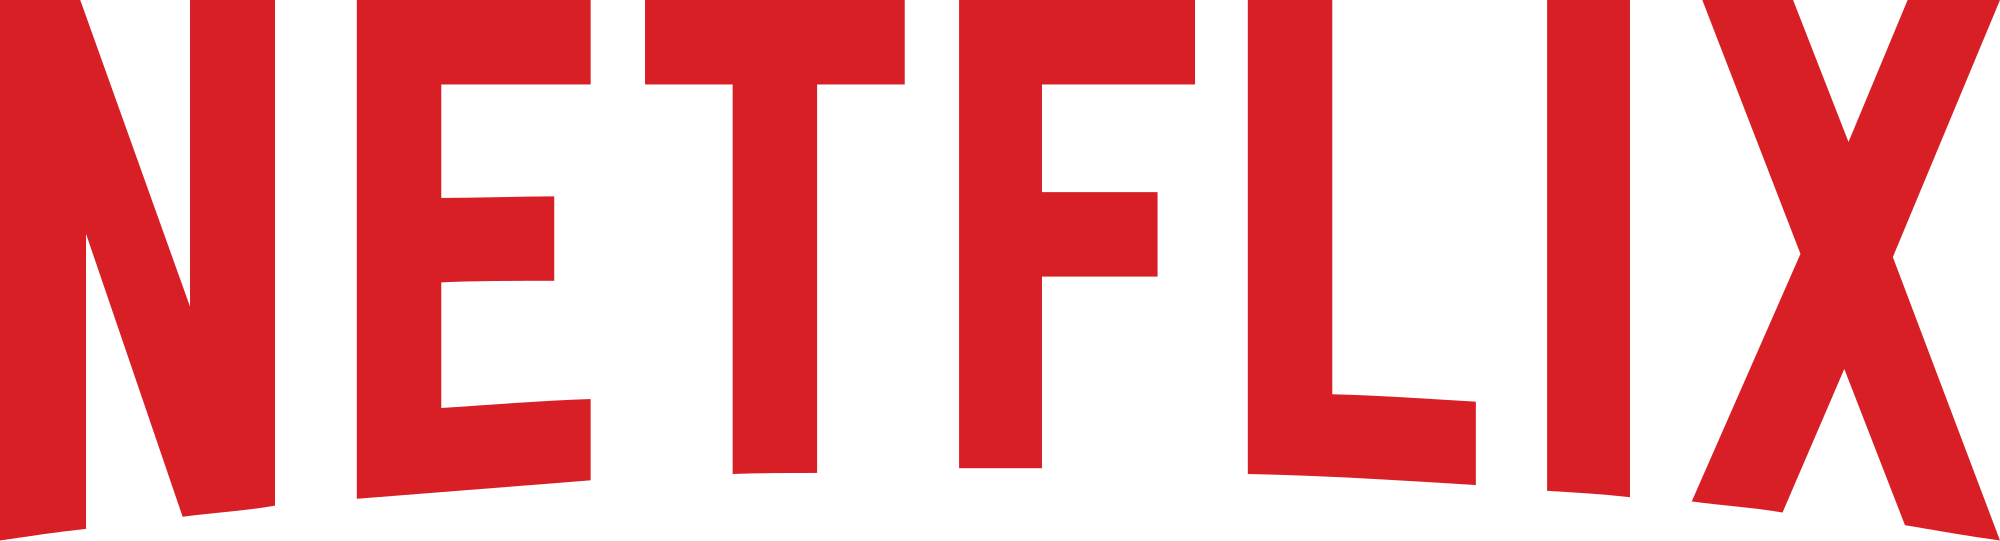 File netflix logo svg. Transparent codes clip art free stock